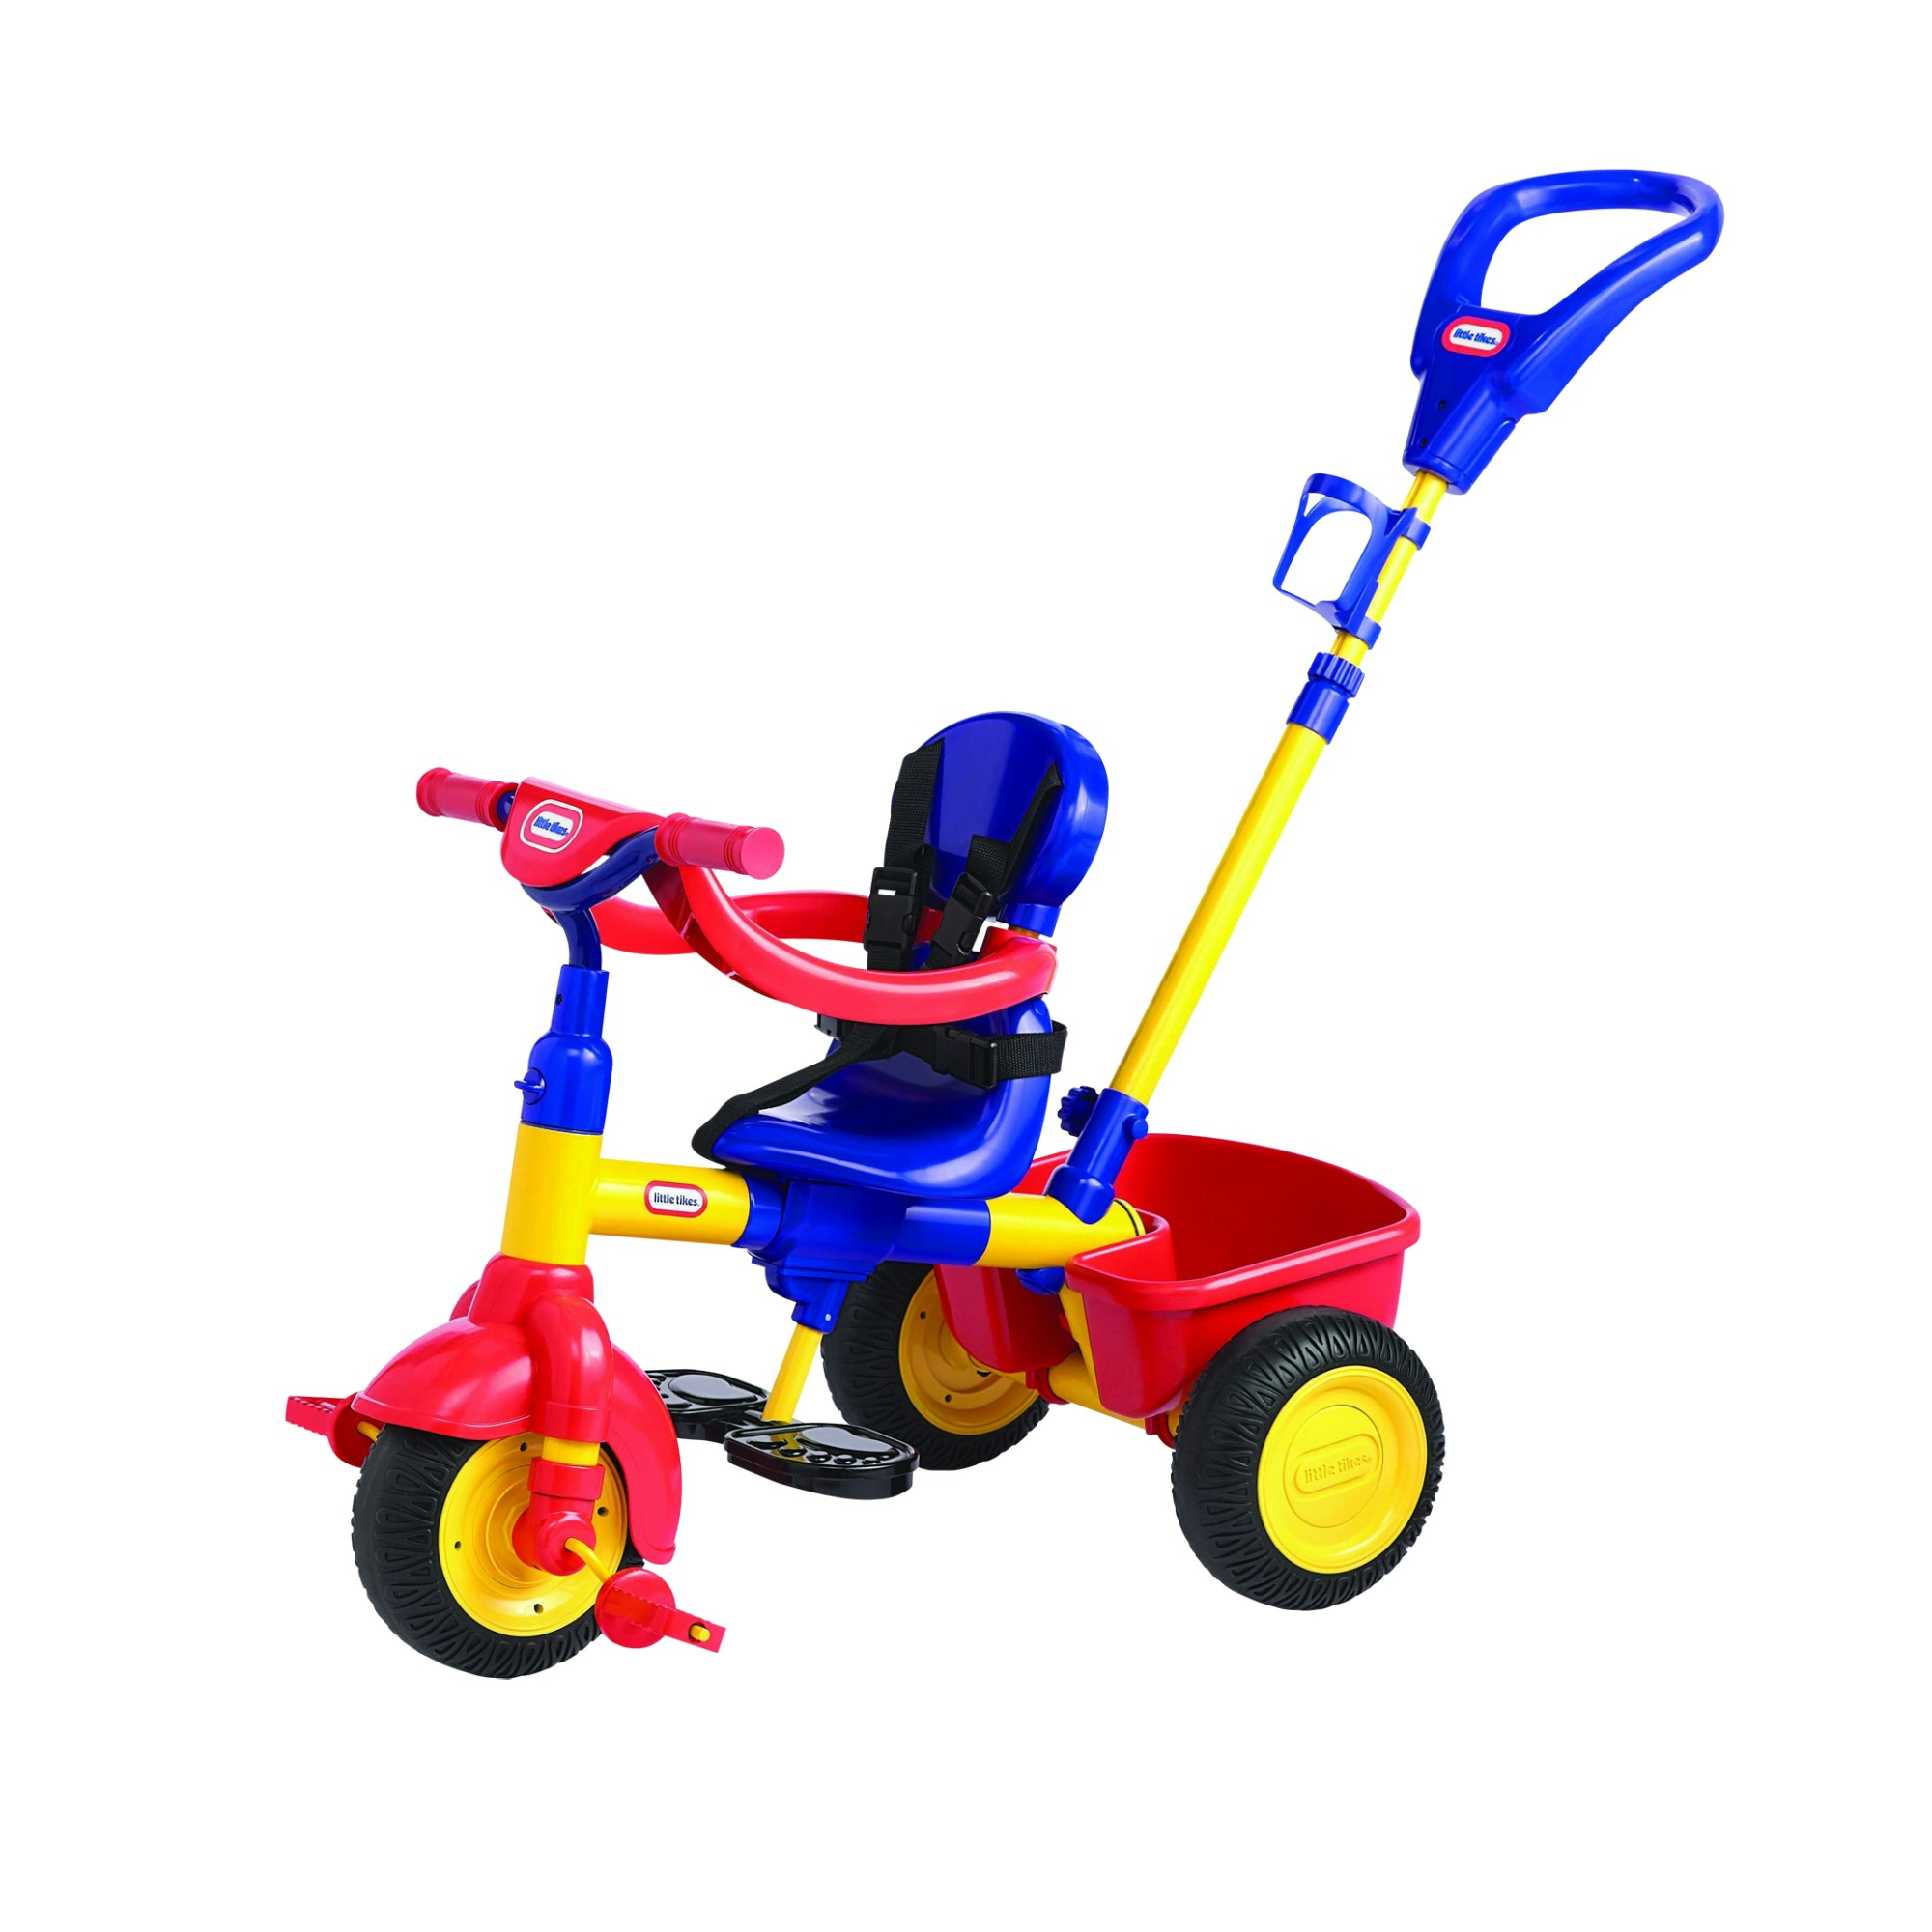 Little Tikes 4IN1 Primary